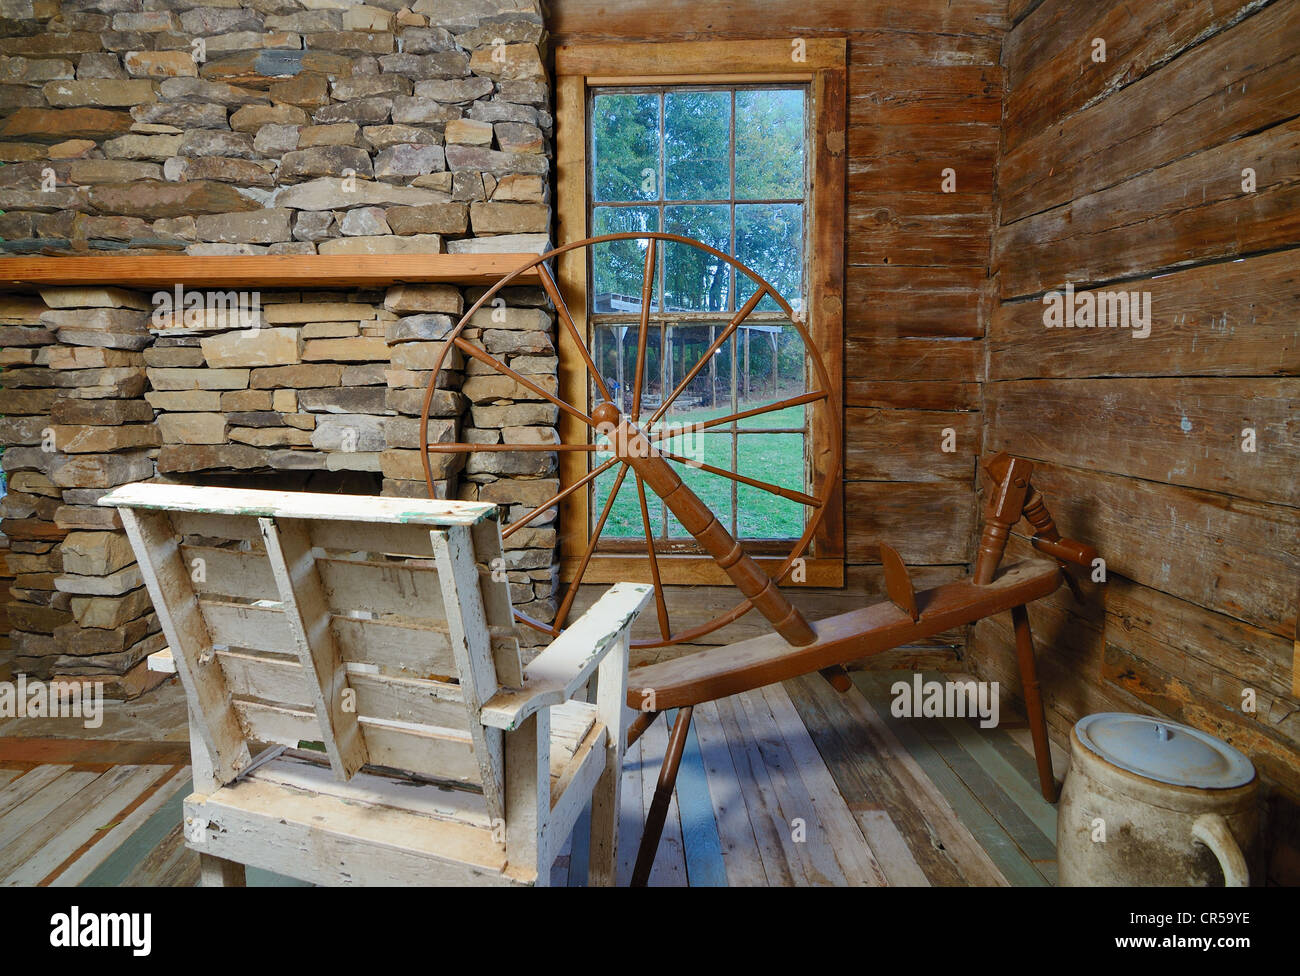 a vintage loom in a period style house - Stock Image